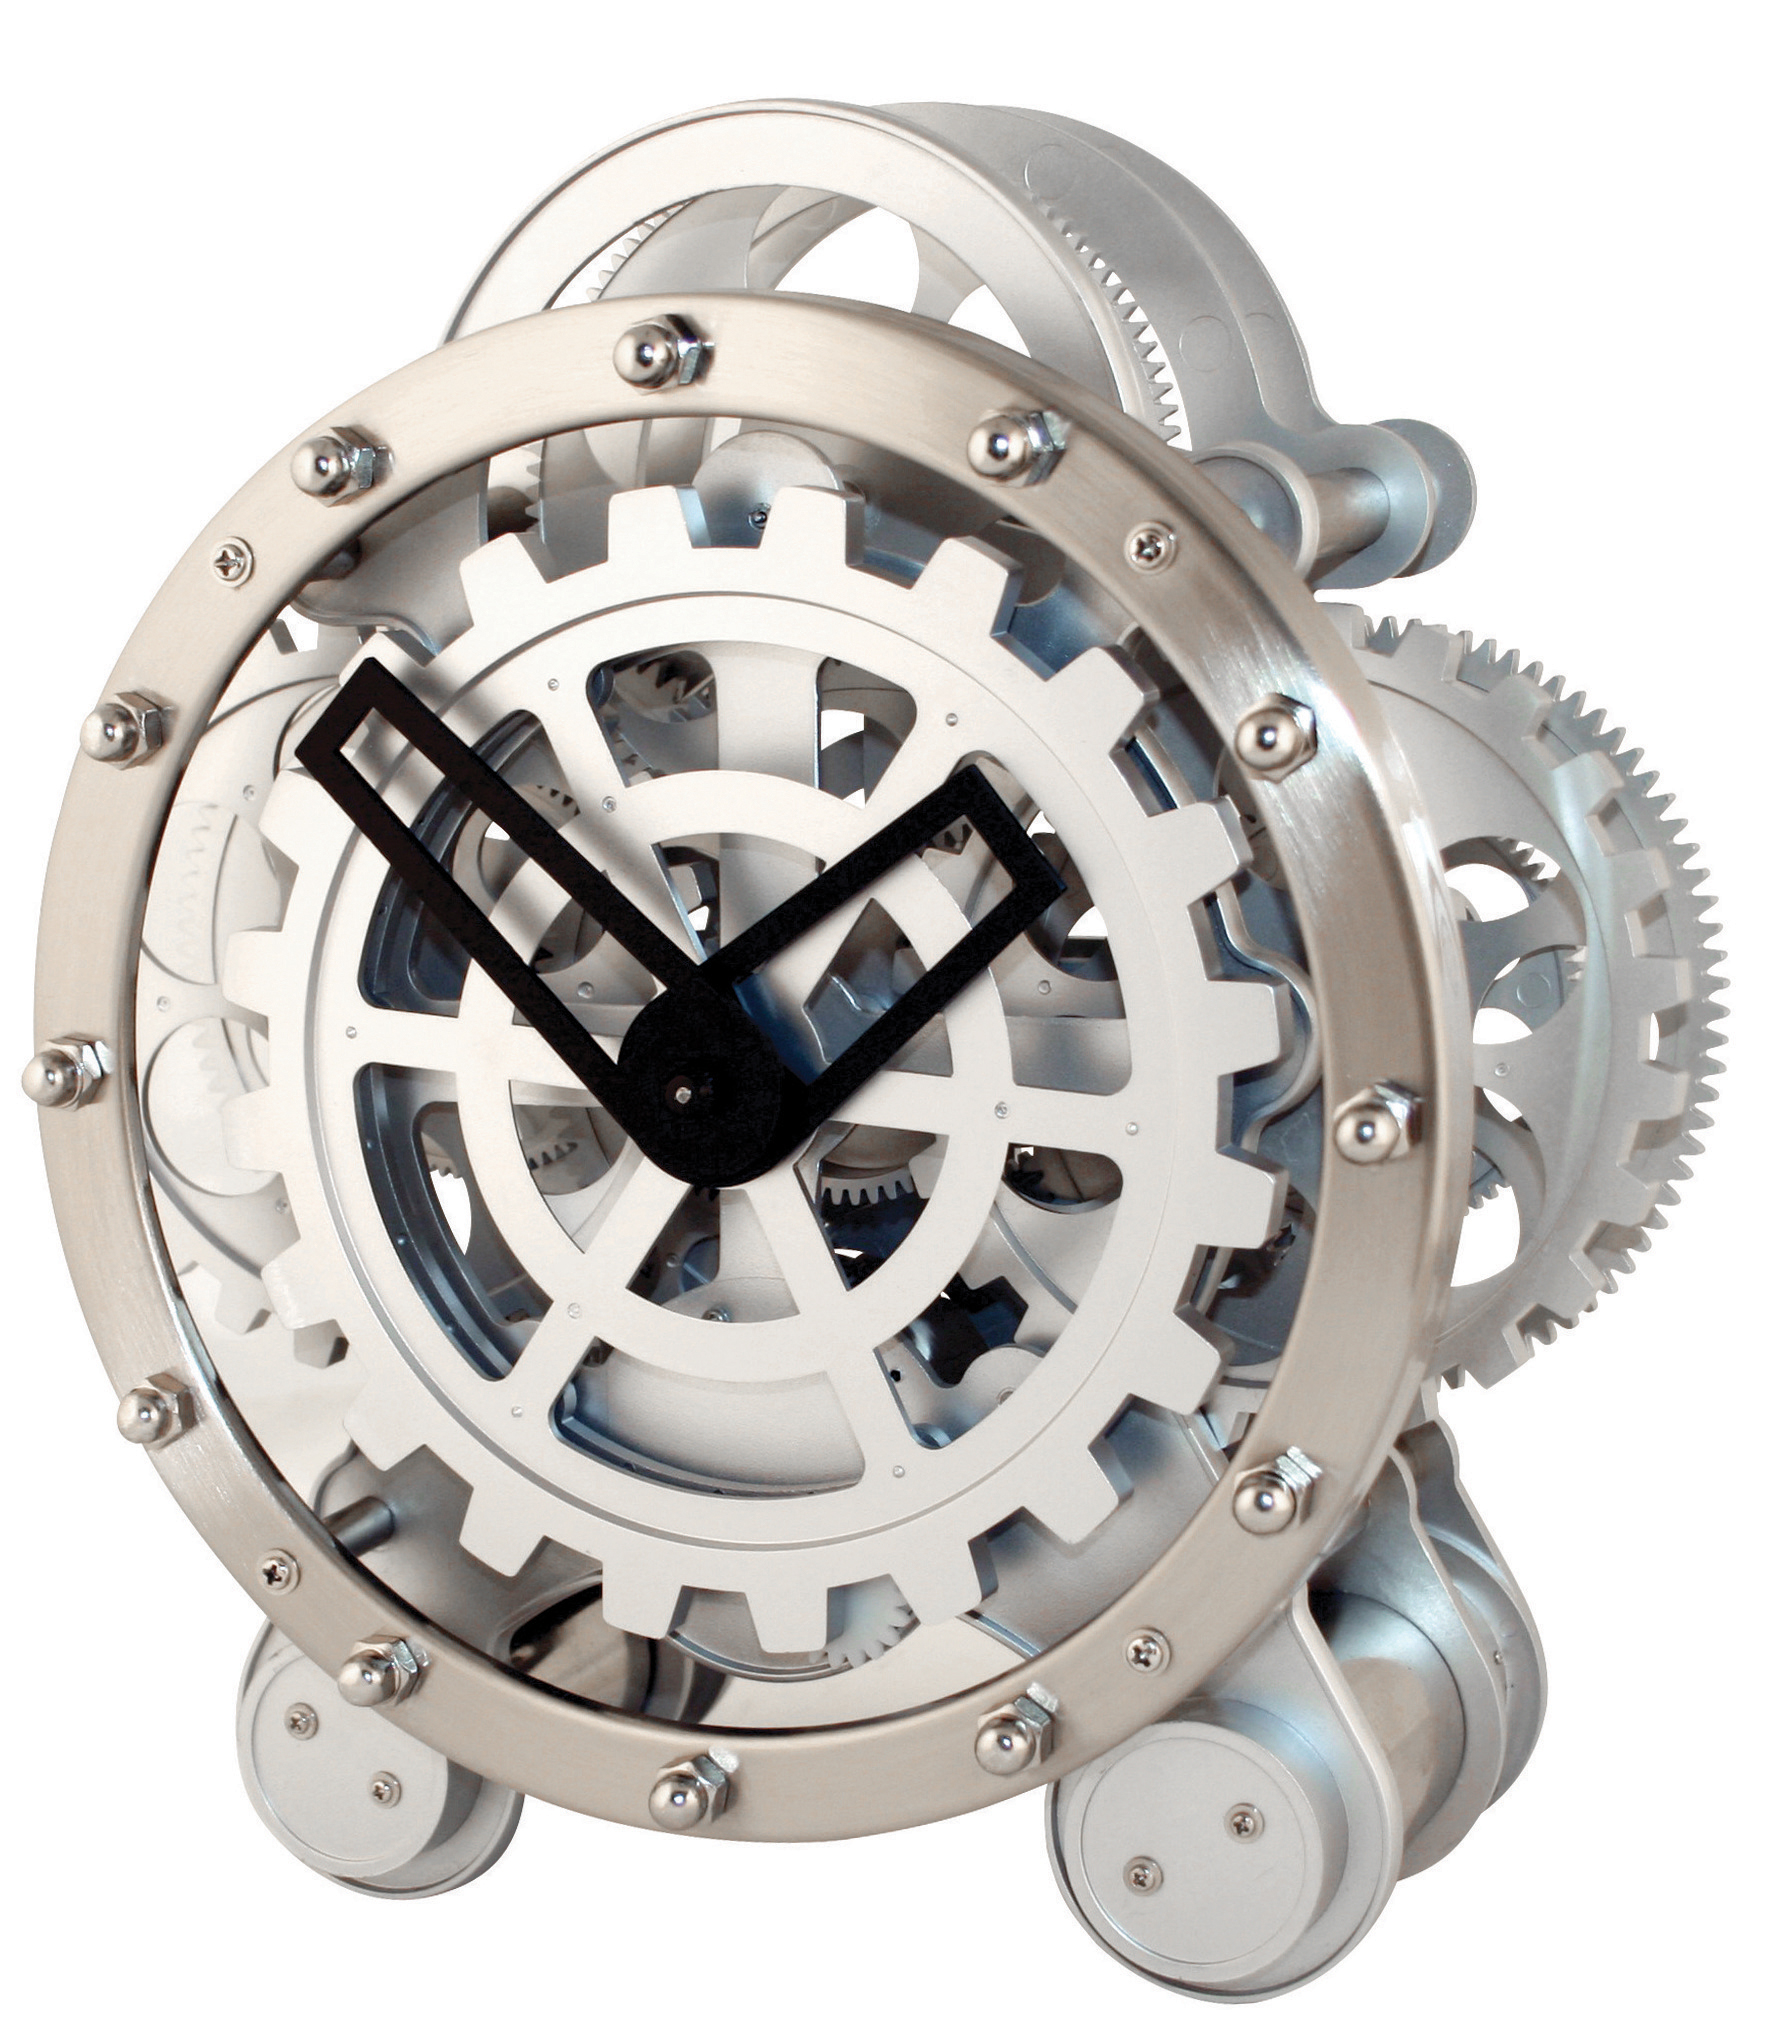 Gear Clock | alvaluz.com